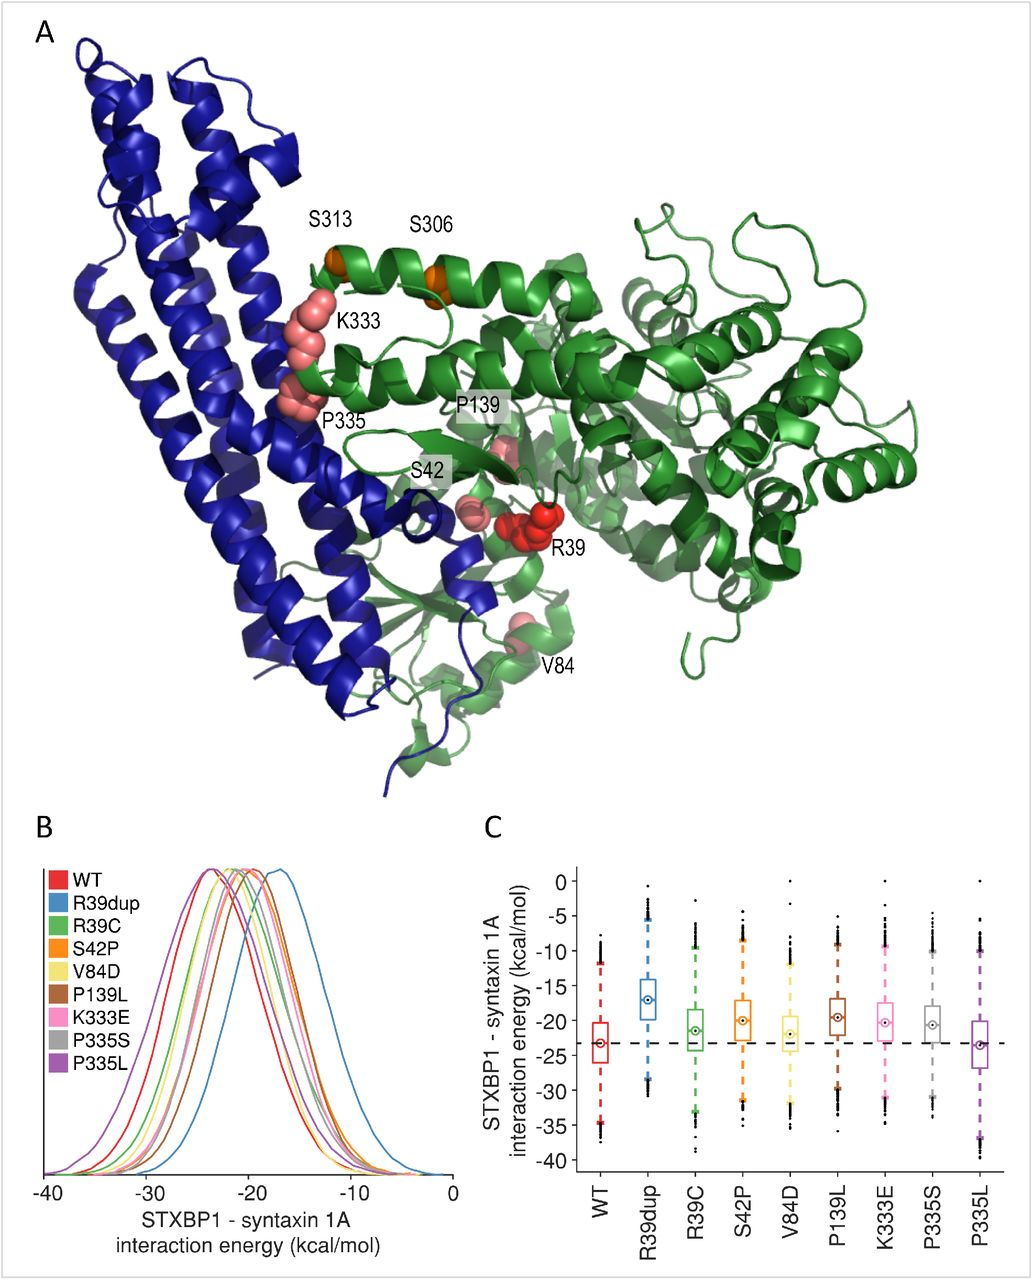 Structural analysis of de novo STXBP1 mutation in complex with